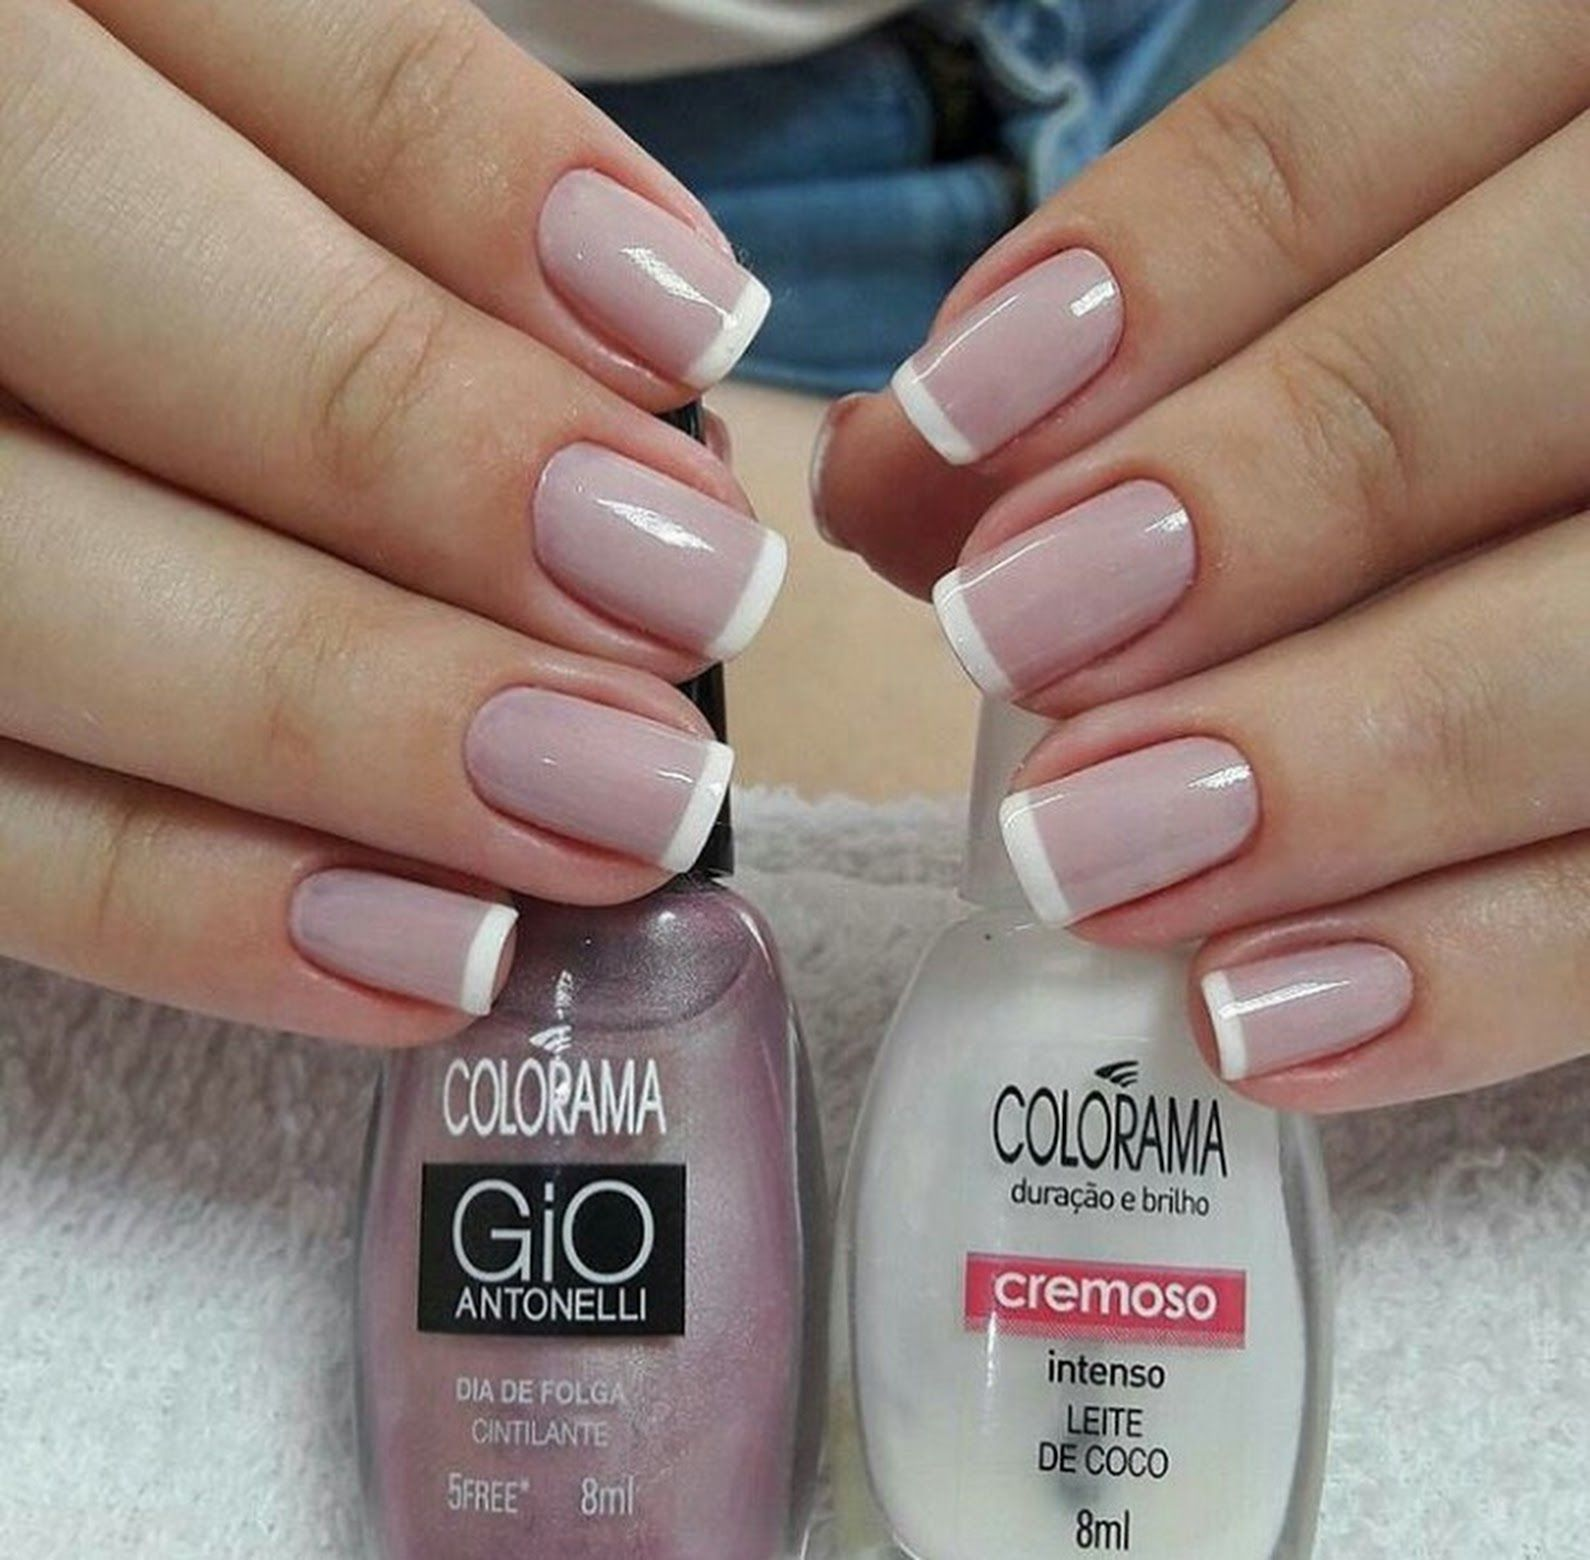 Designing your fingernails or toenails is a lot of fun. It ...